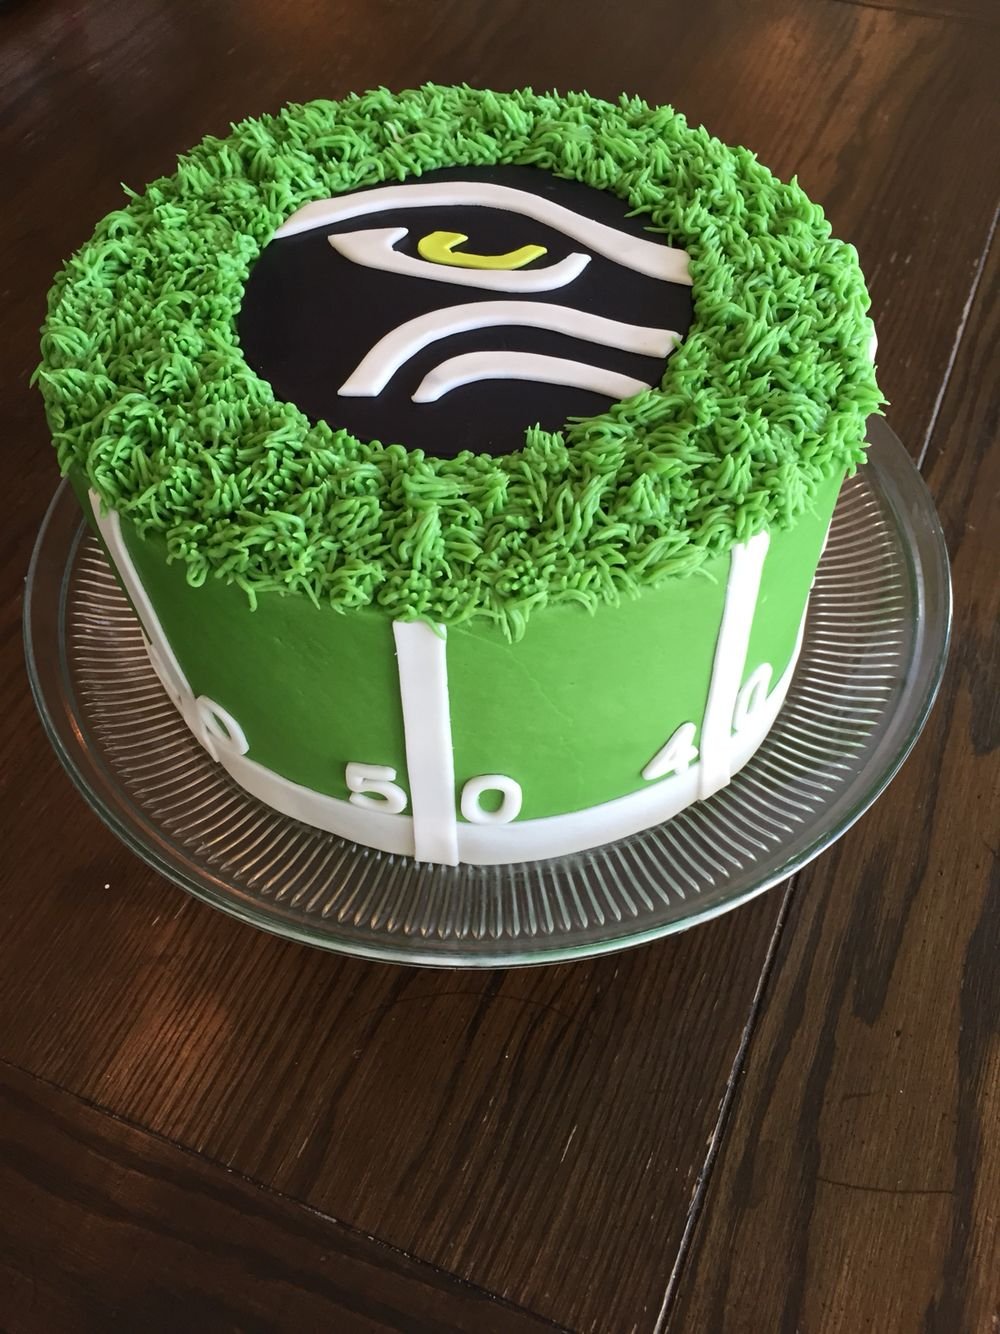 paint for adirondack chairs old fashioned table and seahawks cake   my cakes cookies pinterest best ideas